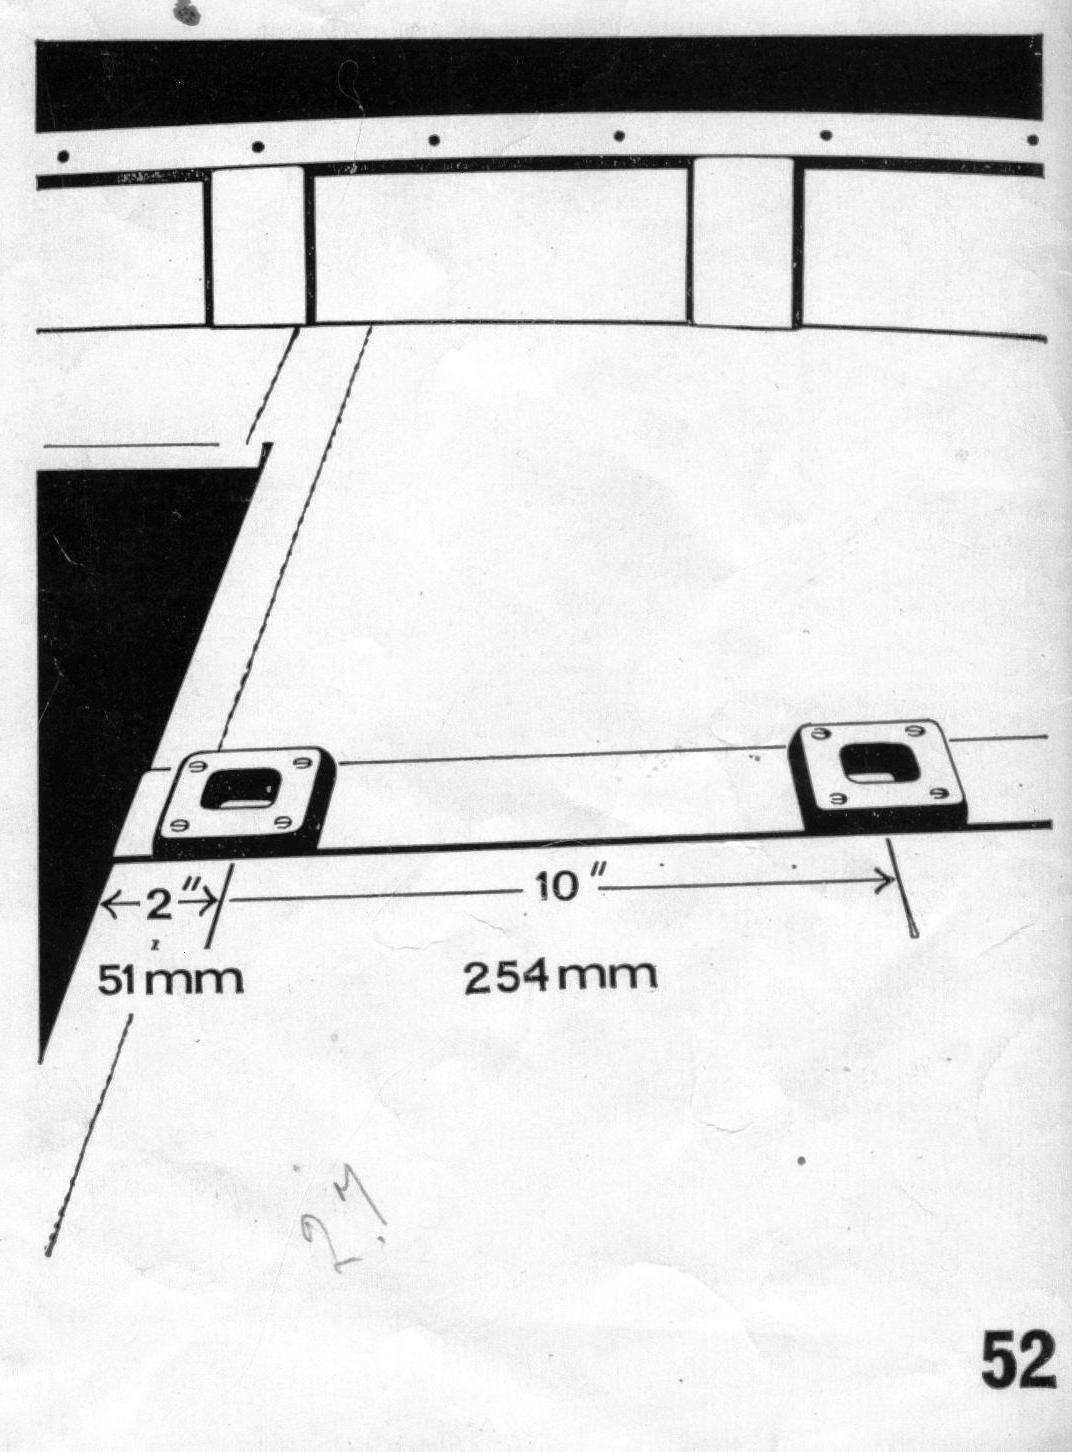 A drawing of the foredeck of a Mirror dinghy showing the mast step positions